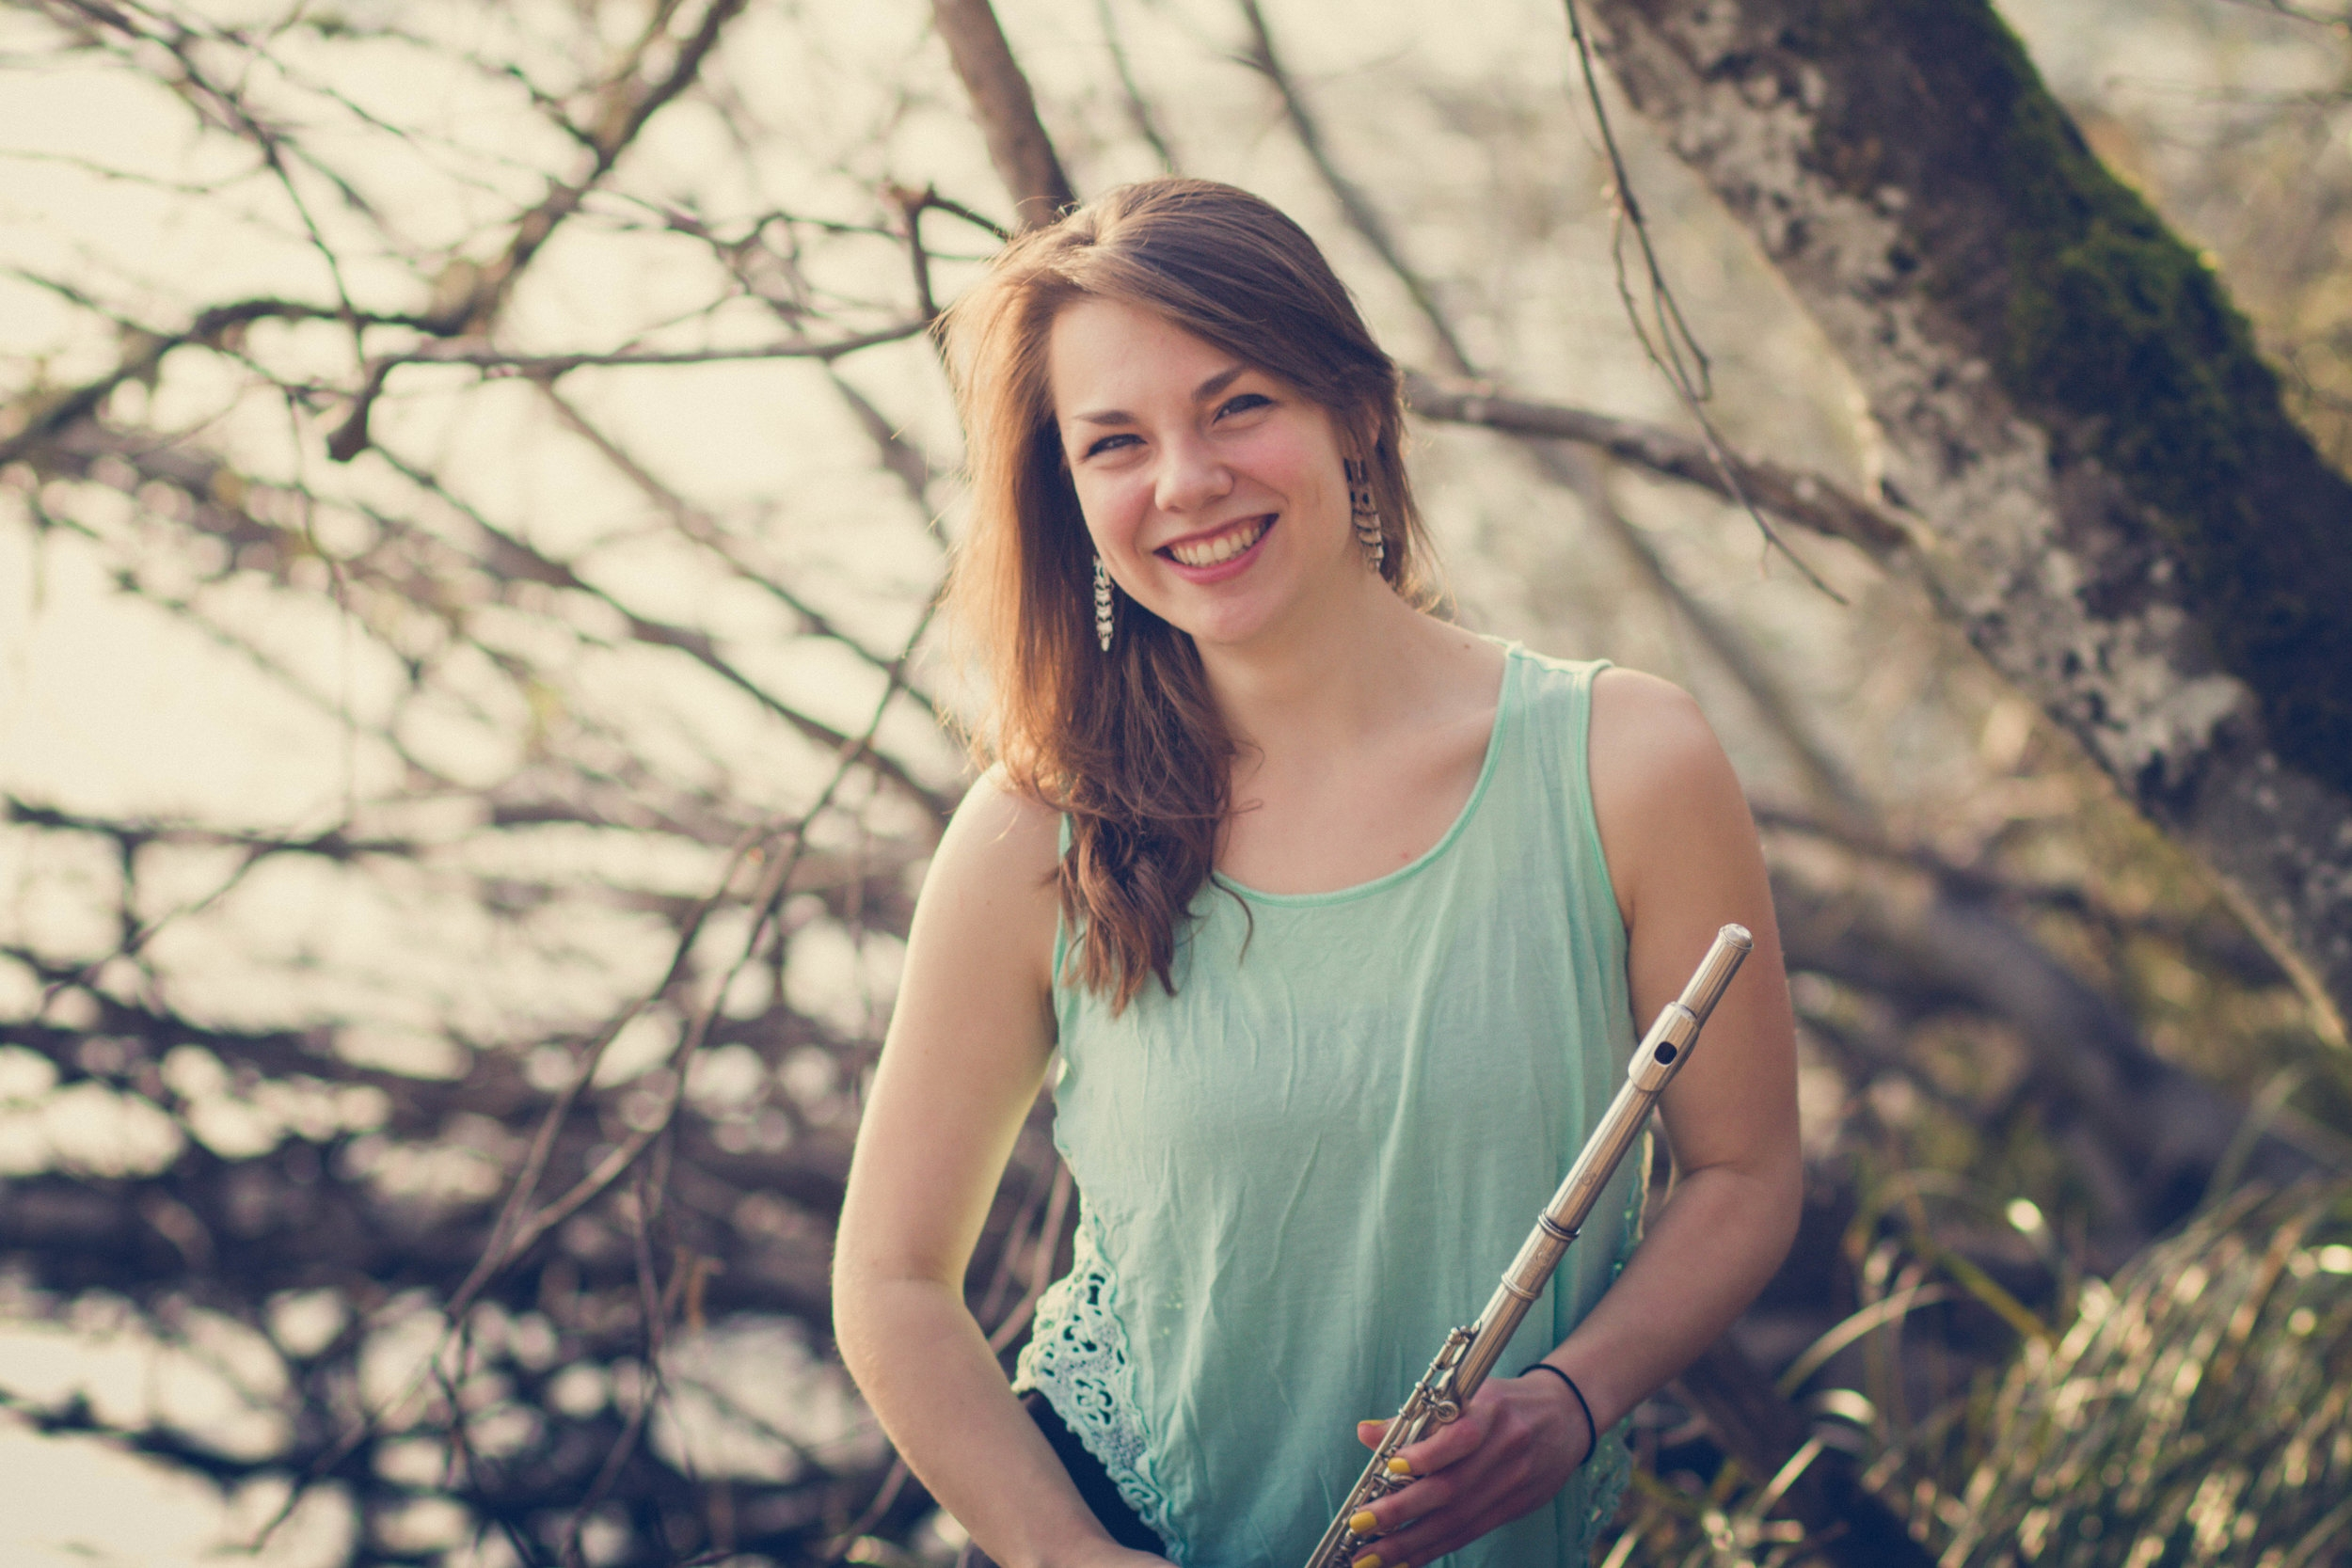 Alexis Evers, flute - Alexis Evers is currently performing and teaching in Eugene, Oregon, where she performs as principal flute with the Eugene Concert Orchestra and second flute with Oregon Mozart Players. She is also the third flutist/piccoloist with the Rogue Valley Symphony and has performed with Orchestra NEXT (Eugene Ballet Company), Festival Napa Valley's Blackburn Music Academy, and Eugene Symphony Orchestra. An avid performer of new music, she was a 2018 Guest Artist for the Oregon Bach Festival Composers Symposium and was recently a featured performer at the 2018 SEAMUS national conference. In her free time, Alexis enjoys long-distance running.2019–2020 Season Sponsor: Charles and Leslie Wright